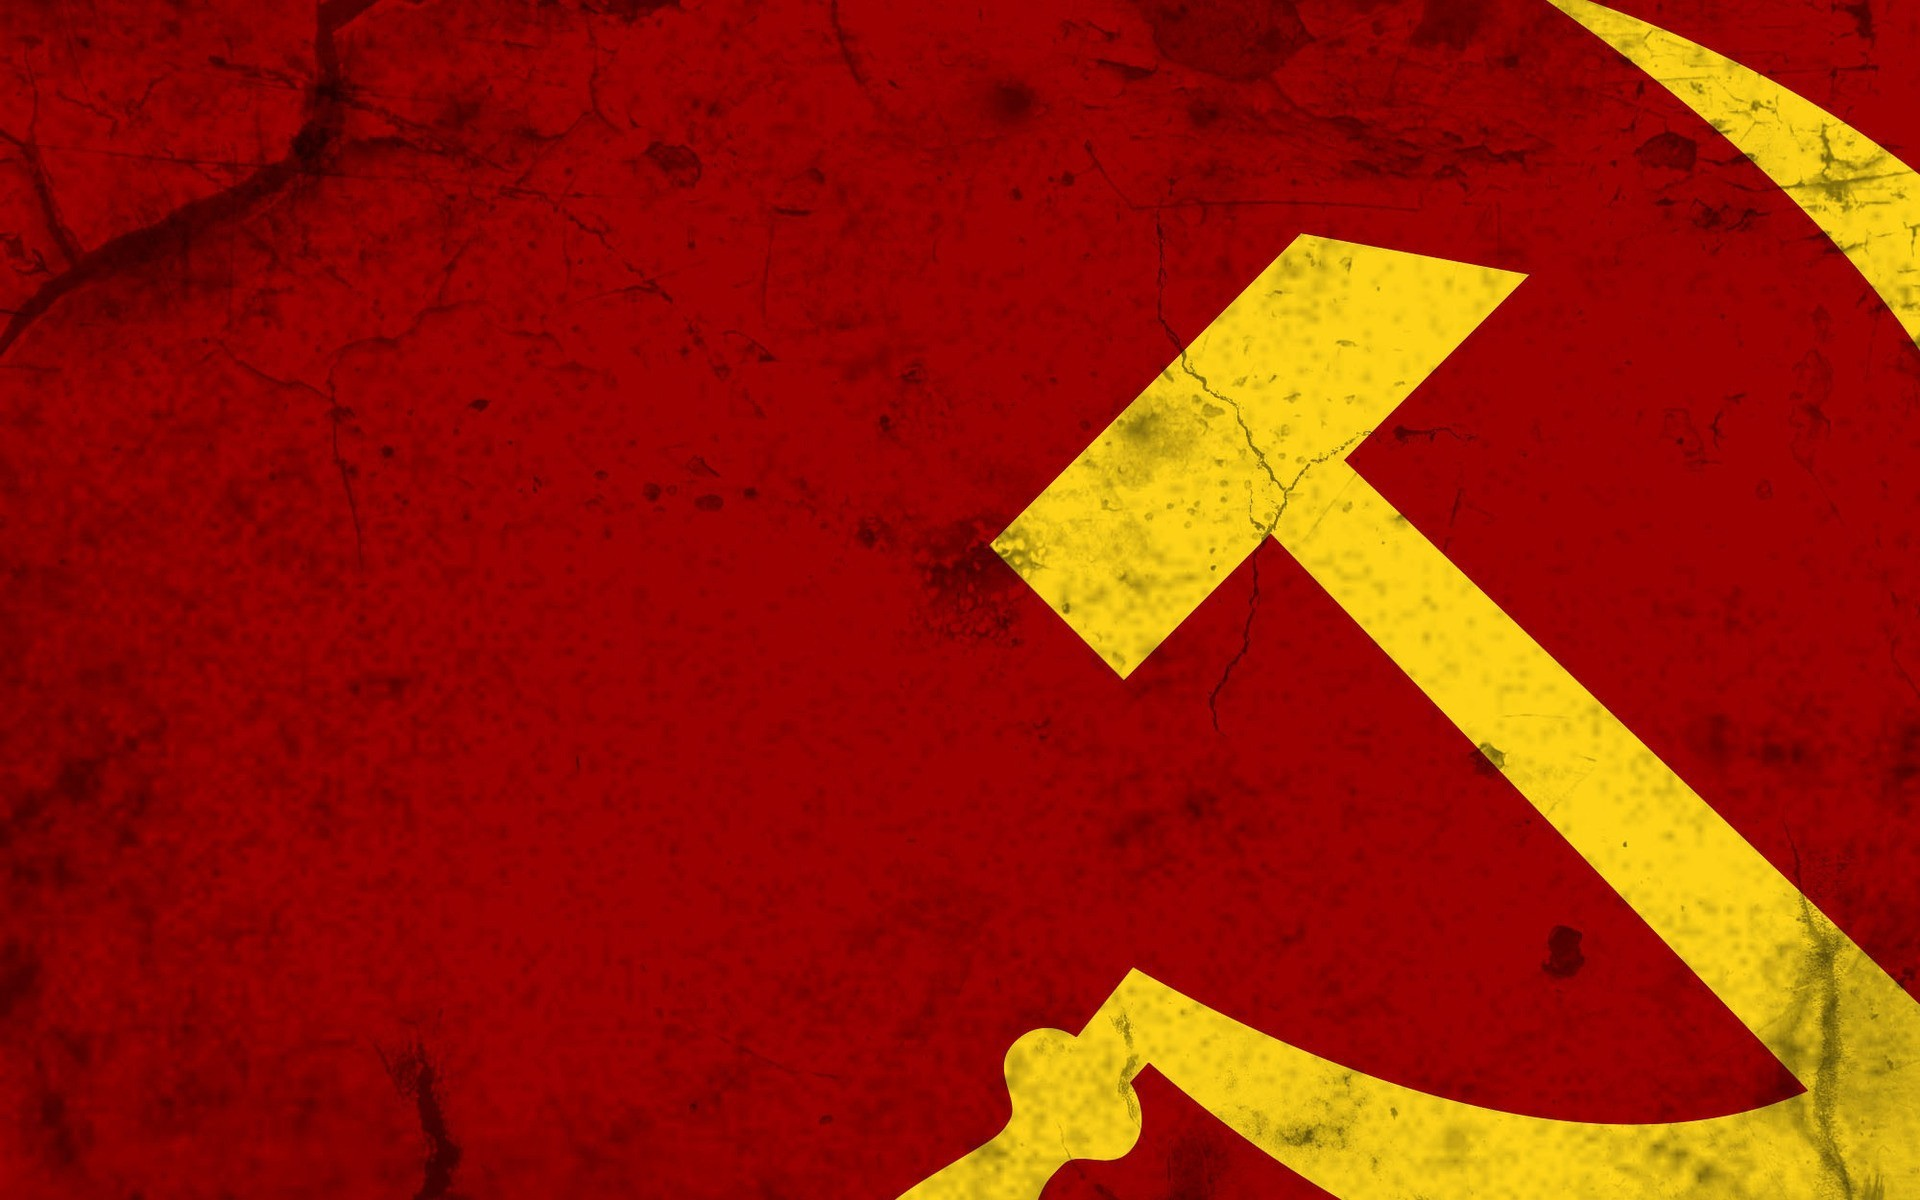 1920x1200 Wallpaper Hammer and sickle, Soviet union, Russia, Symbols